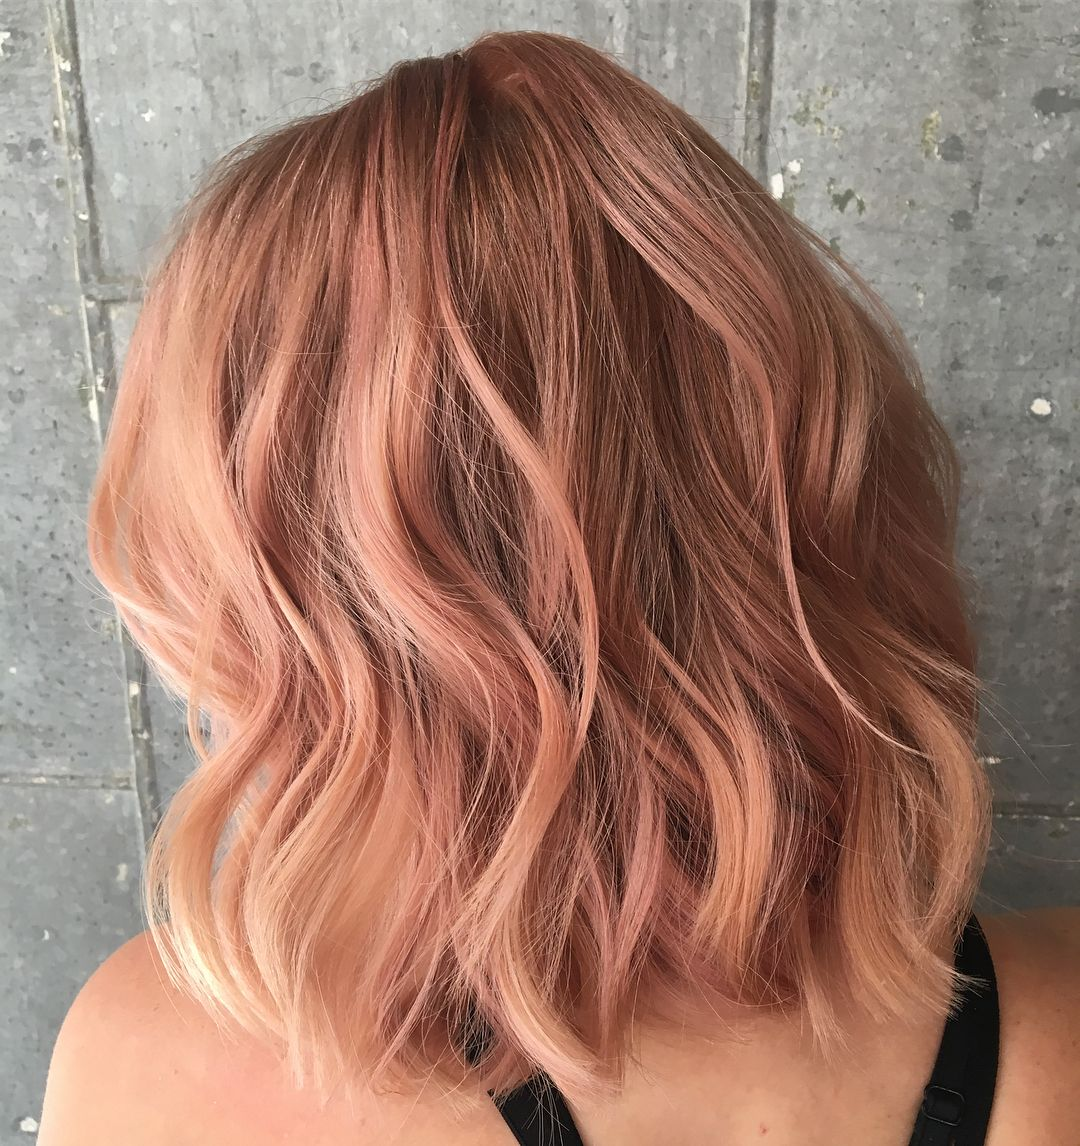 Rosegold With Copper Undertones Colorists